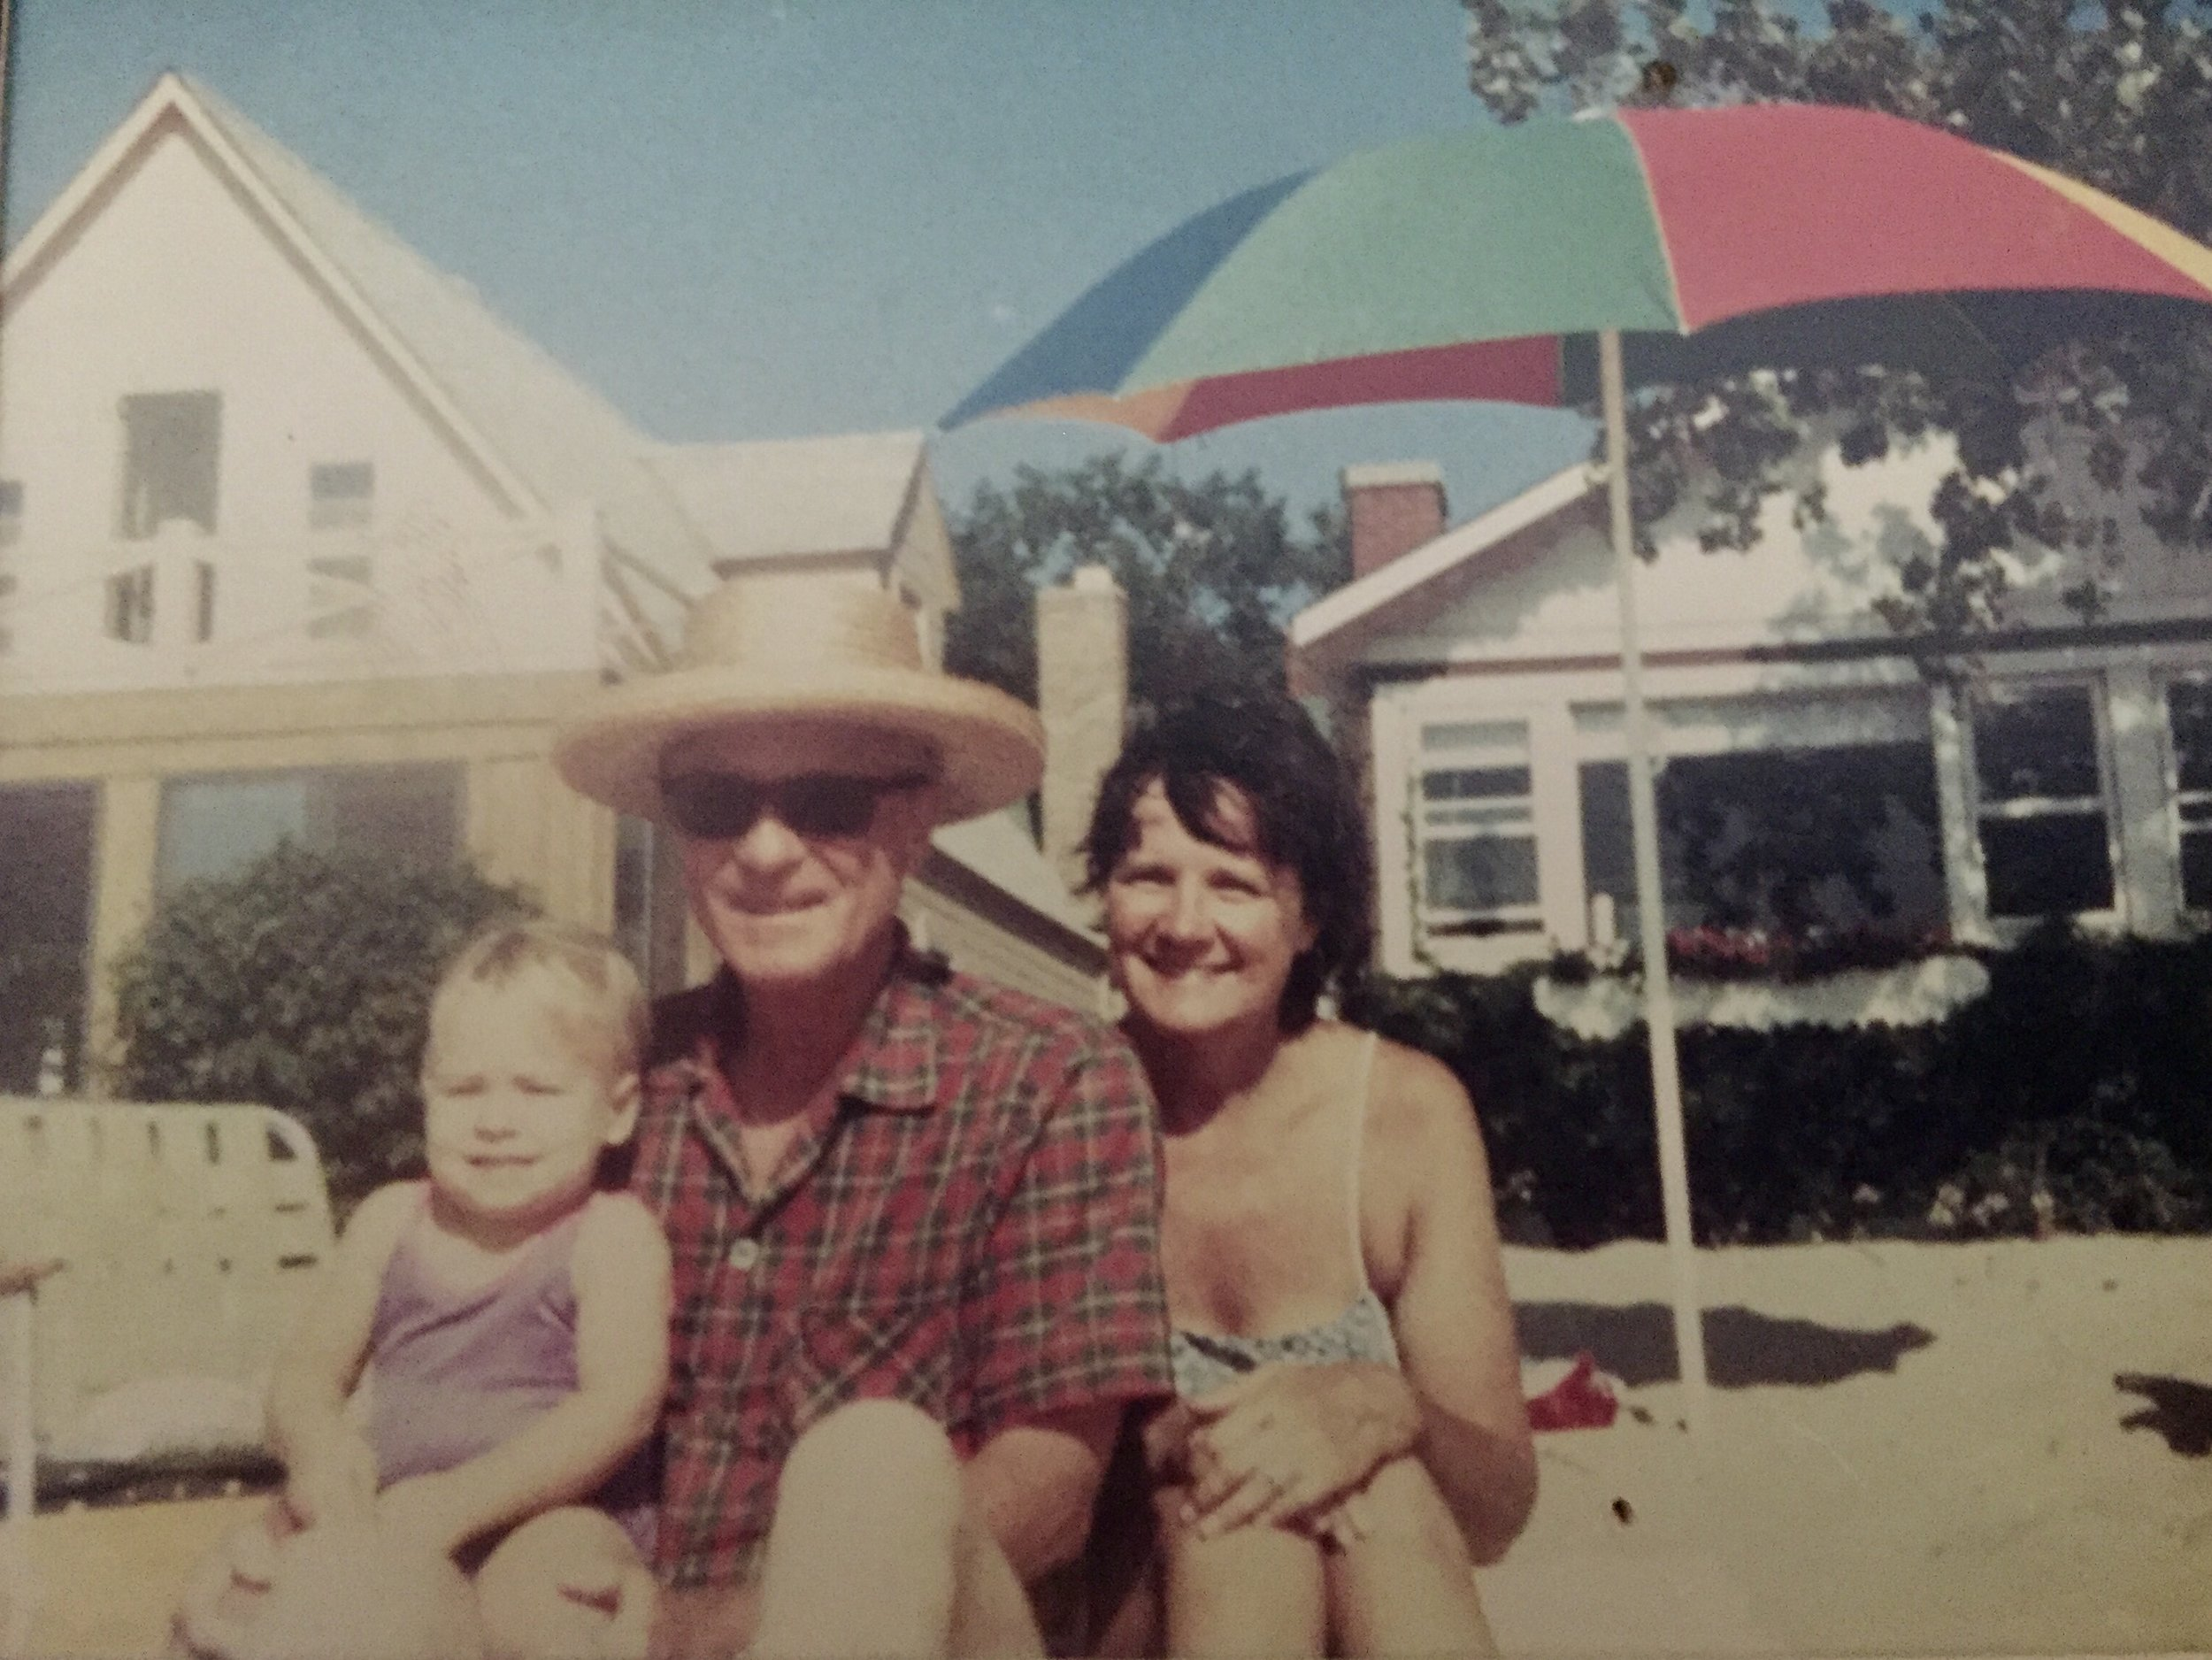 Me with my grandparents in Michigan, Summer 1984